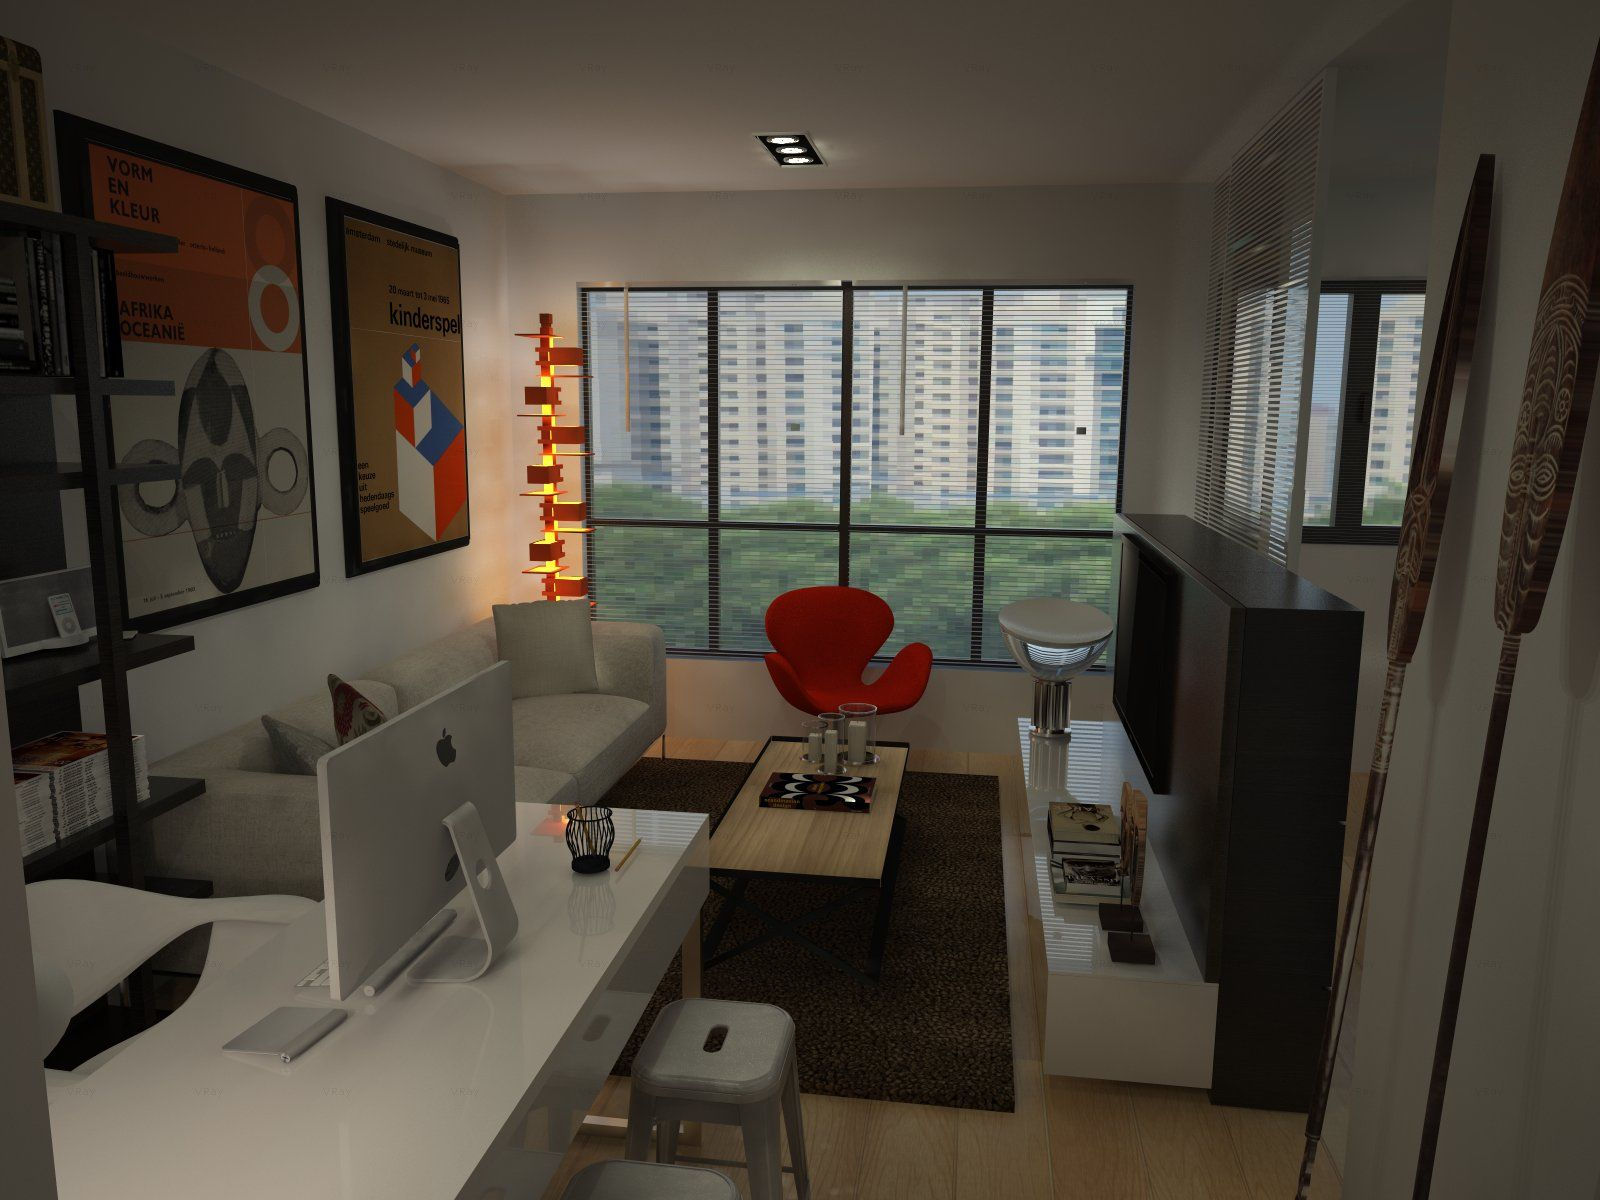 Hdb bto for singles 2 room 47sqm hdb apartment in for 3 room bto design ideas